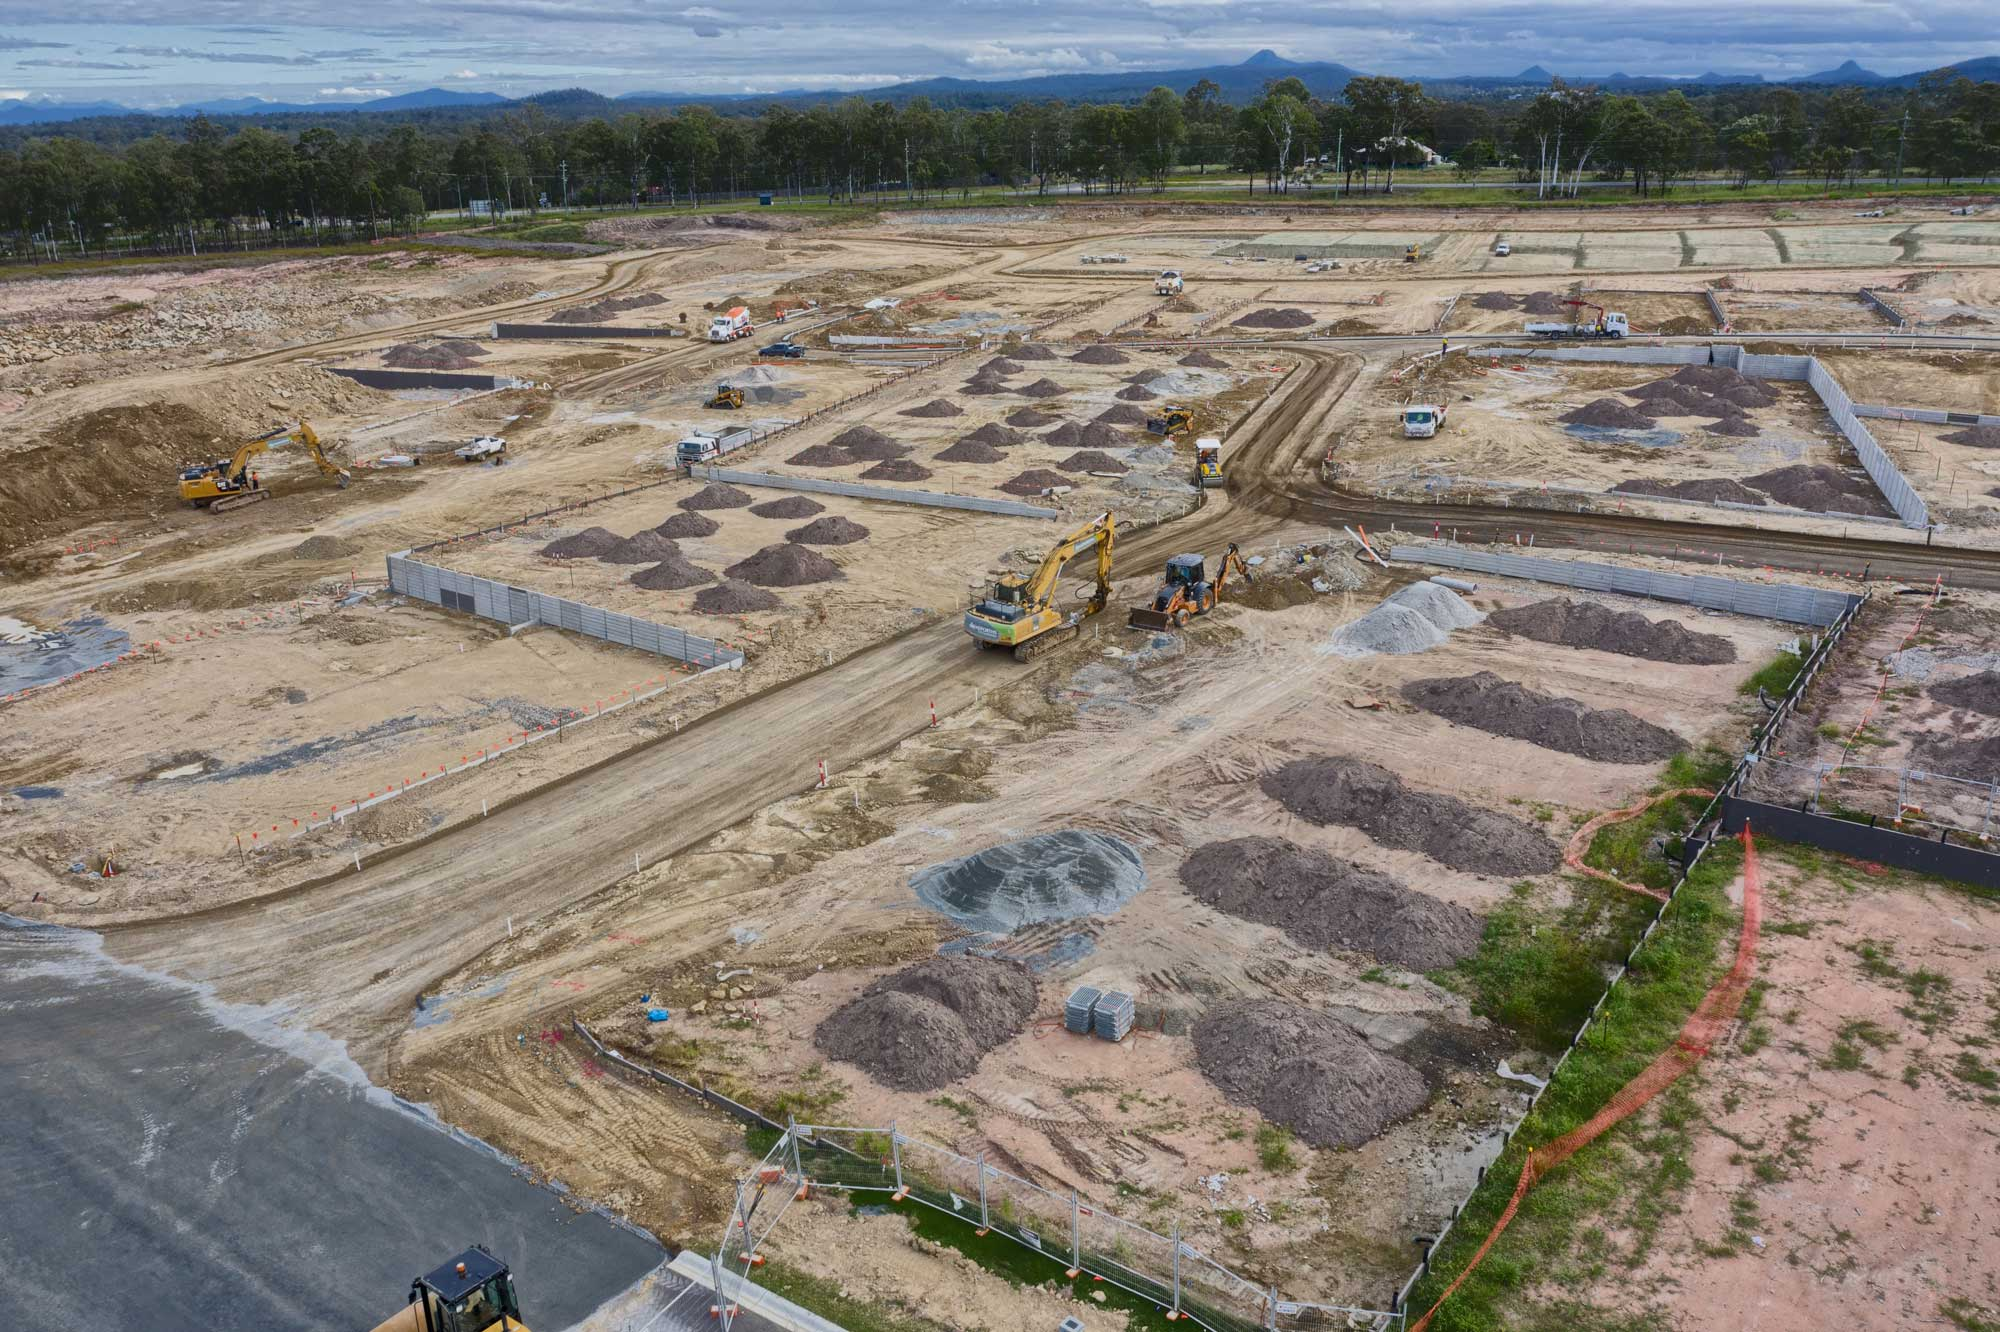 The Mavic2Pro films a construction site at Greenbank